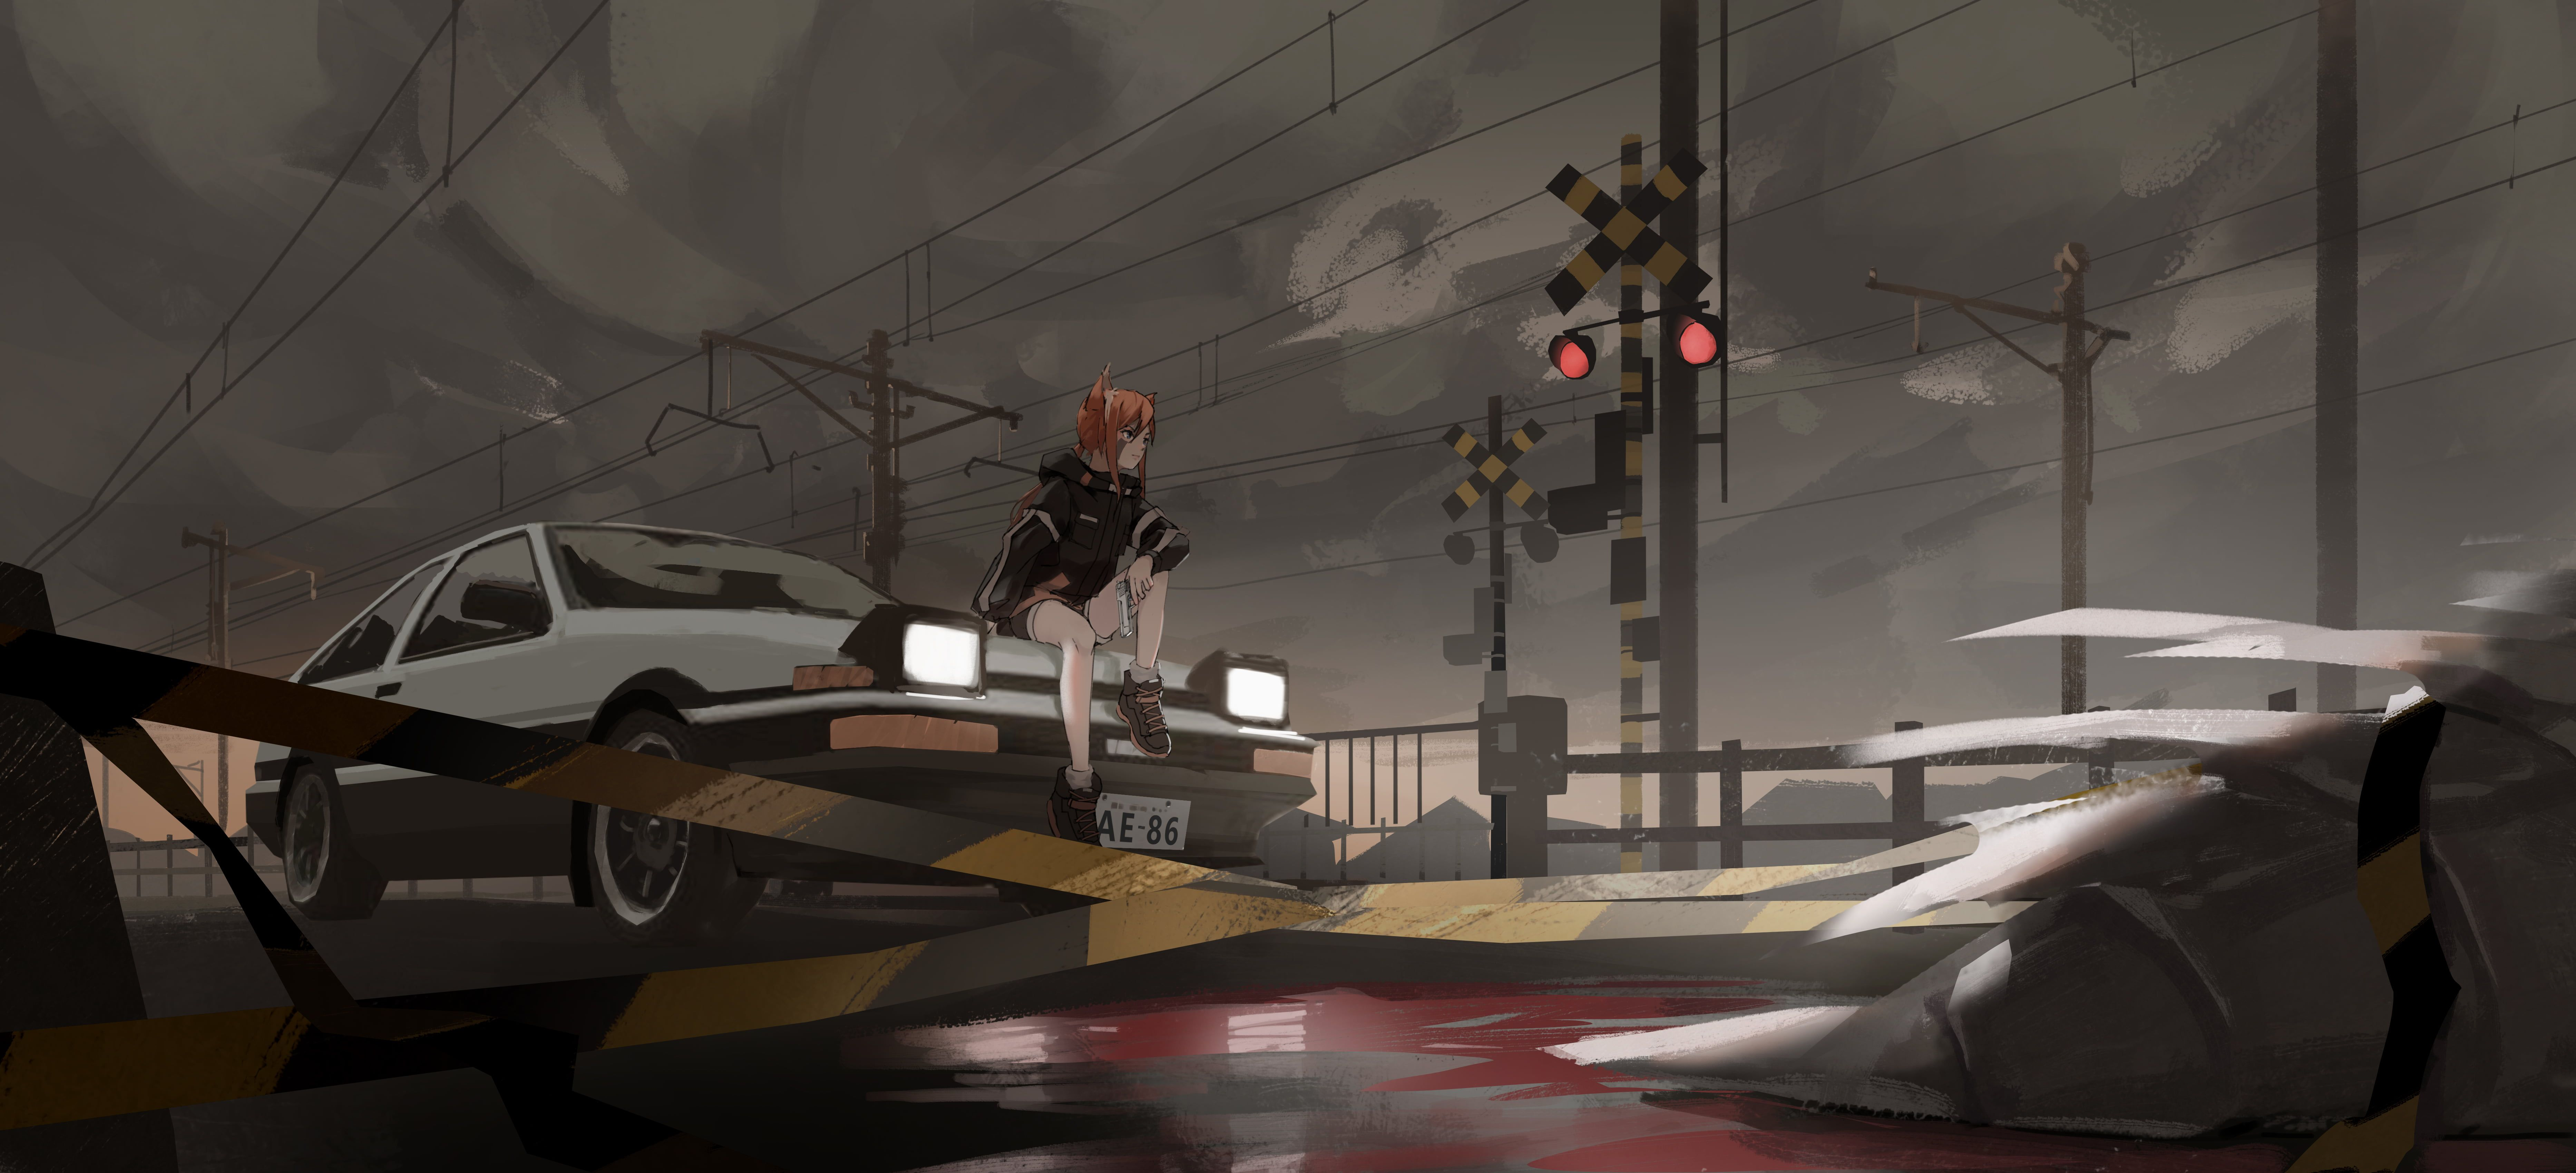 1920x1080 69+ japanese anime wallpapers on wallpaperplay>. JDM Anime Wallpapers - Wallpaper Cave